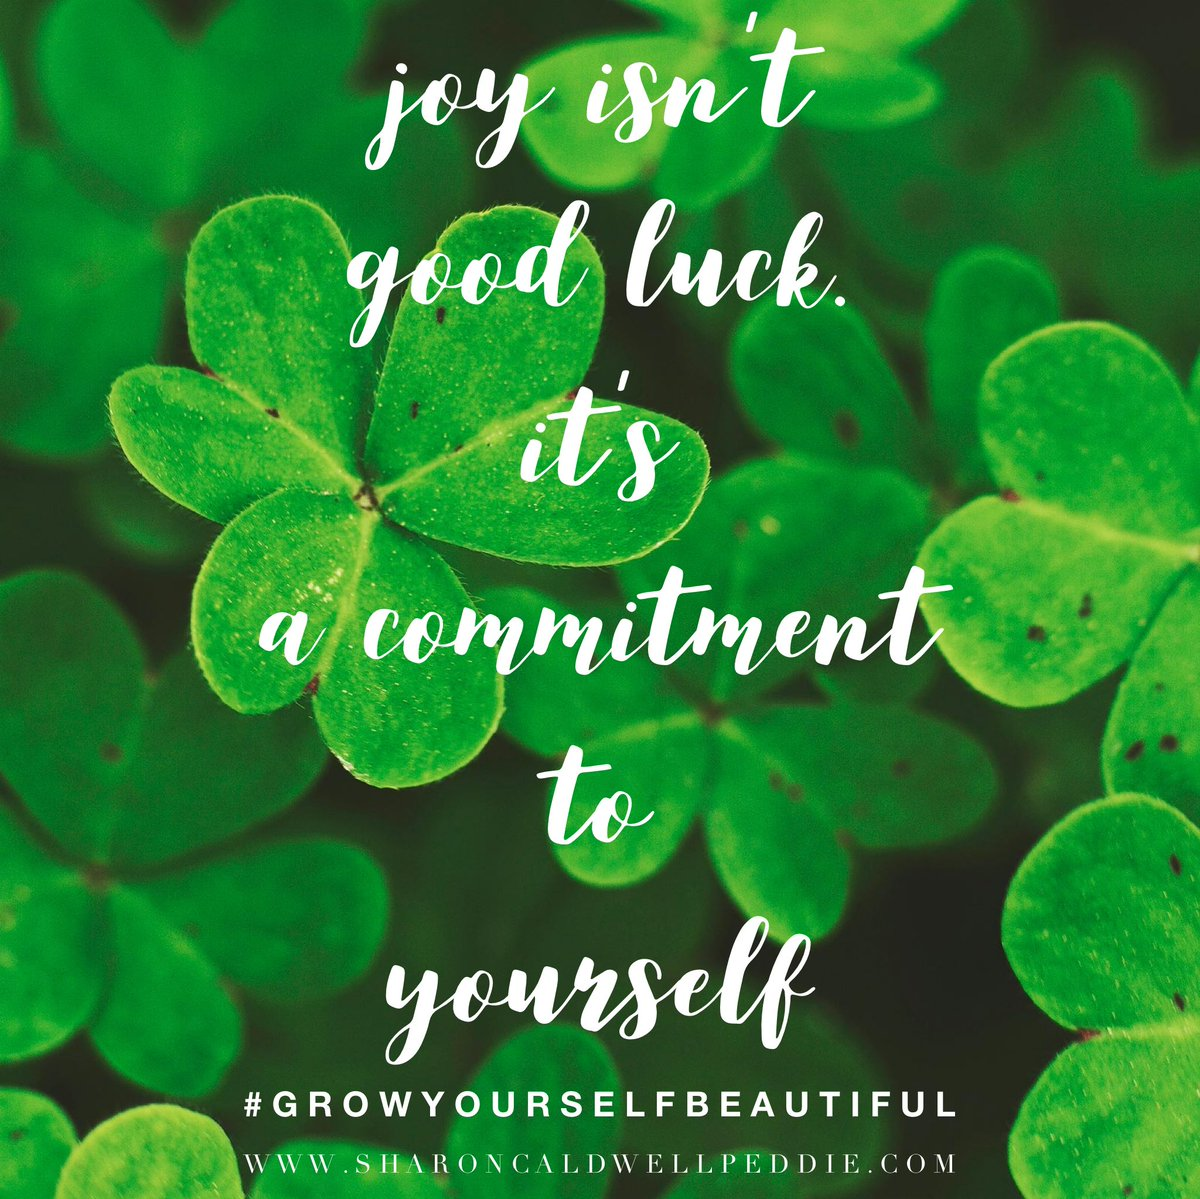 #mindfulmonday  Make beautiful commitments to yourself and your growth💚 #growyourselfbeautiful💕💗 #selfcare #selflove #joy #mindfulness #gratitude #mondaymotivation #behappy #loveyourself #teens #youngwomen #mentalhealth #selfesteem http://www.sharoncaldwellpeddie.com